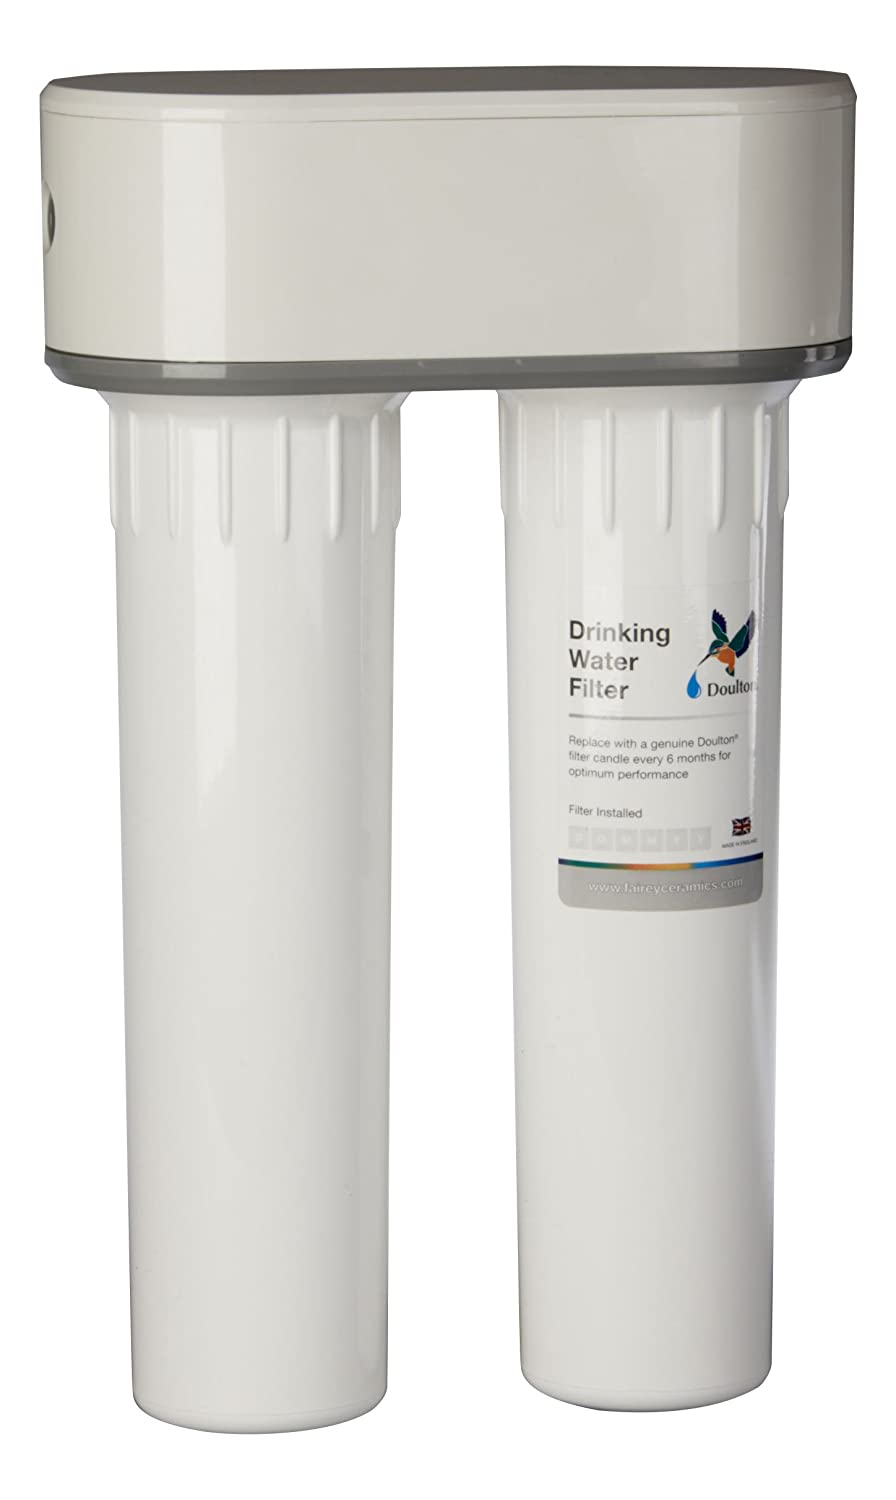 Doulton DUO under sink Drinking Water Filter Housing ¦ includes a Doulton Fluoride Reduction Filter and a Doulton SuperCarb Ceramic Filter Candle ¦ 3/8 inch John Guest push-fit inlet & outlet ¦ 10 inch ¦ BSP thread ¦ W938